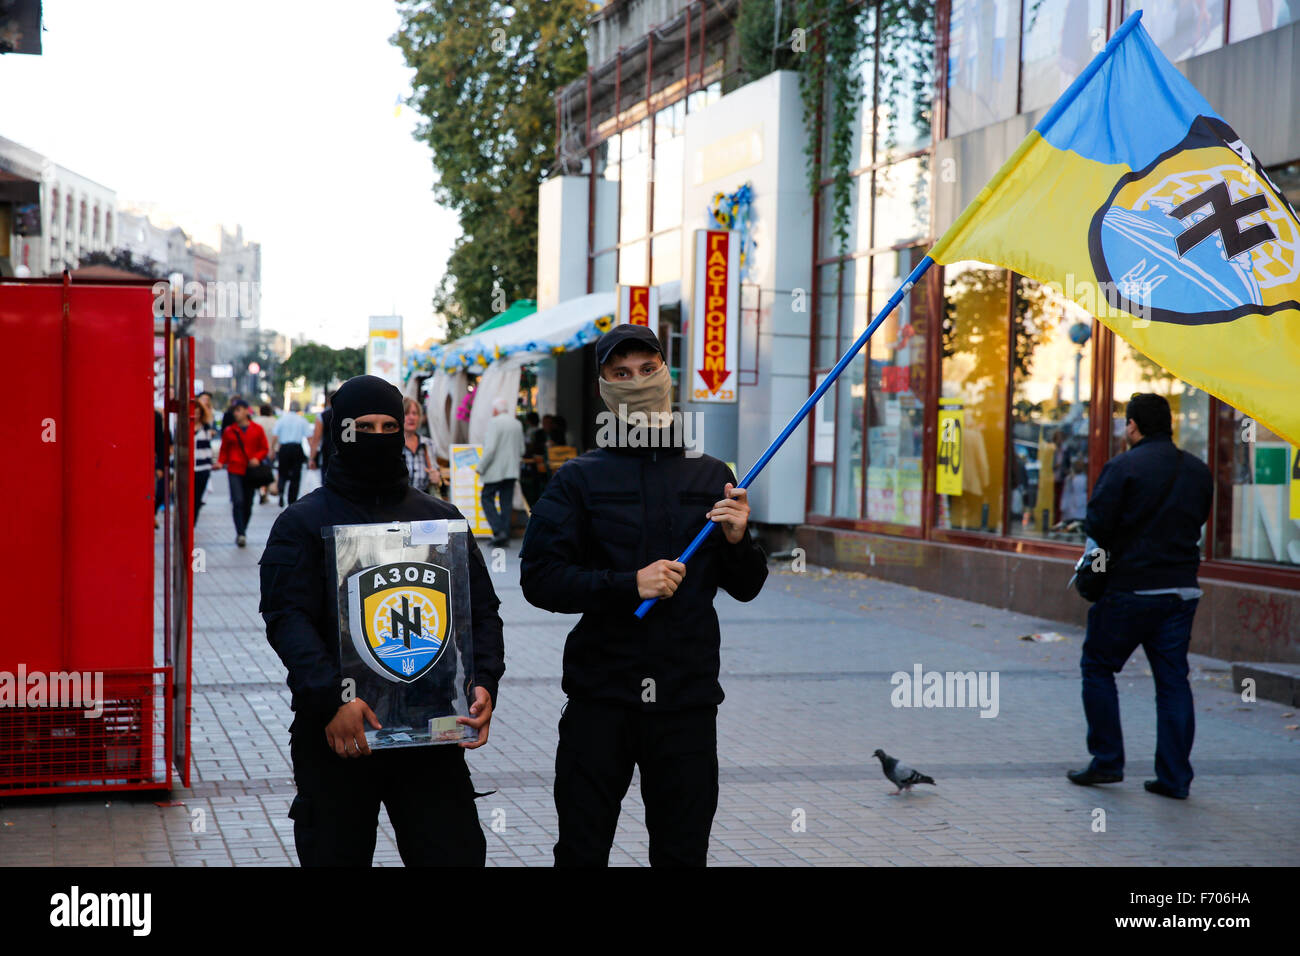 Kiev. Ukraine. (Photo by Jeremy Hogan)Members of the ultra nationalist Azov Battalion carry their flag, and try - Stock Image